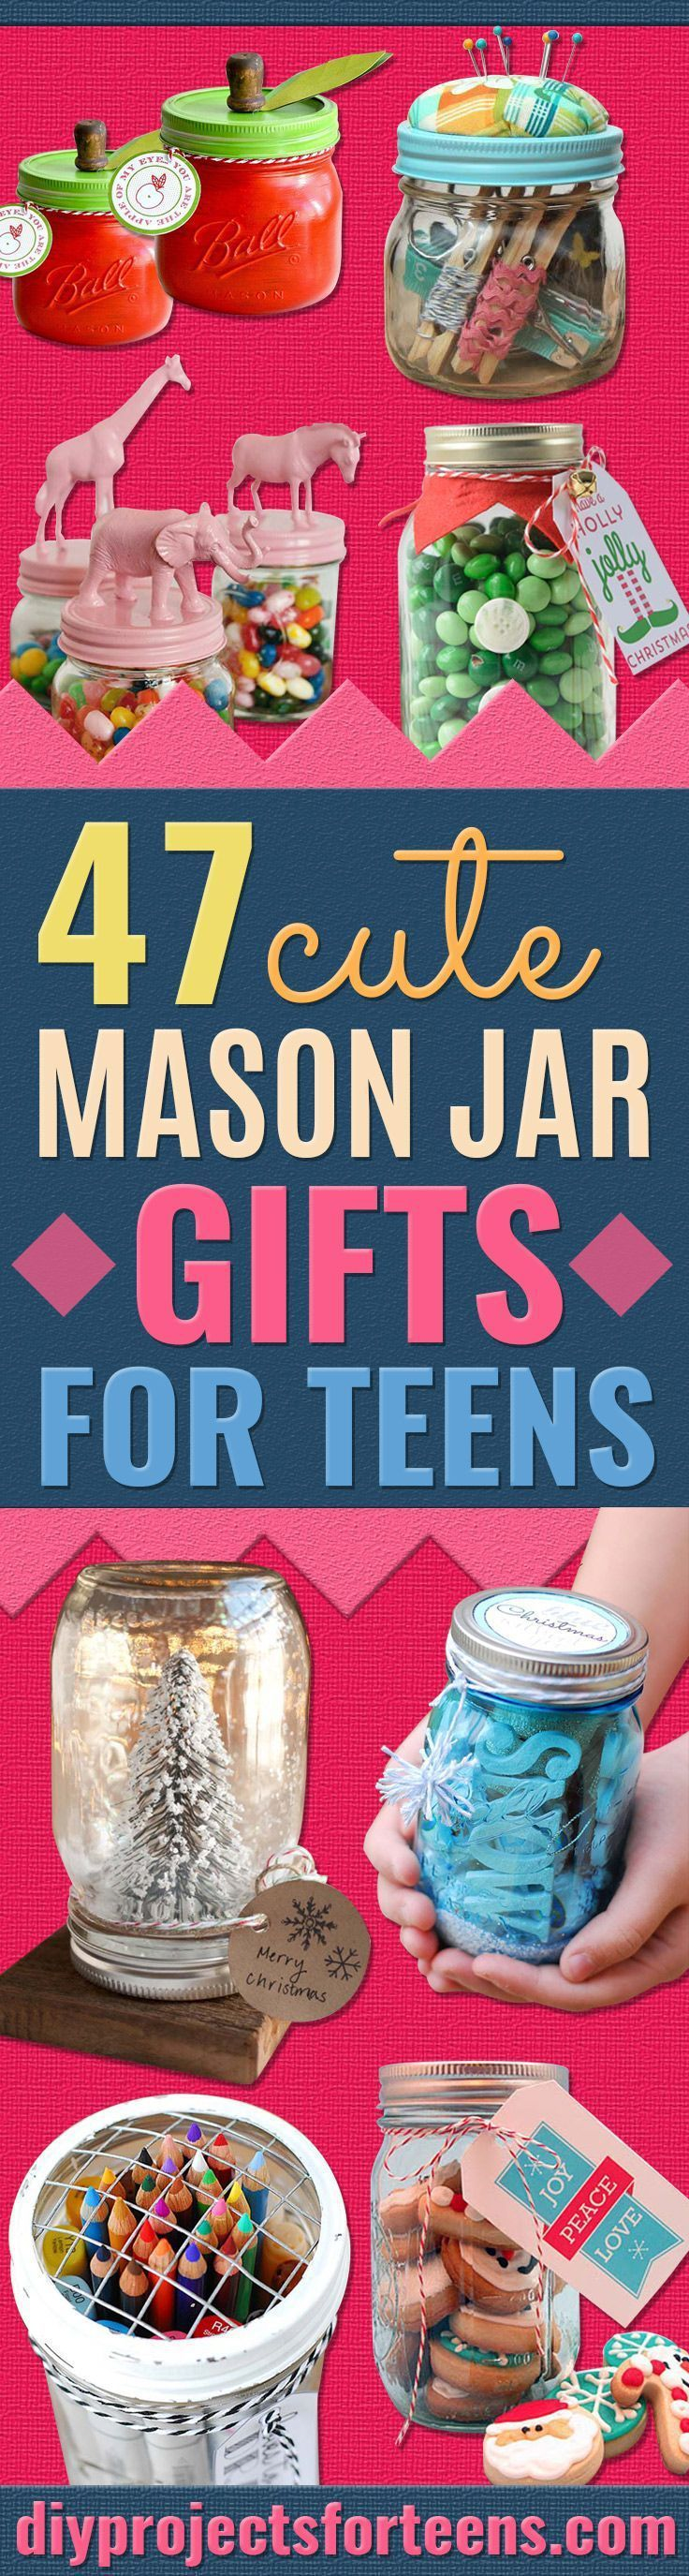 Cute Diy Mason Jar Gift Ideas For Teens  Best